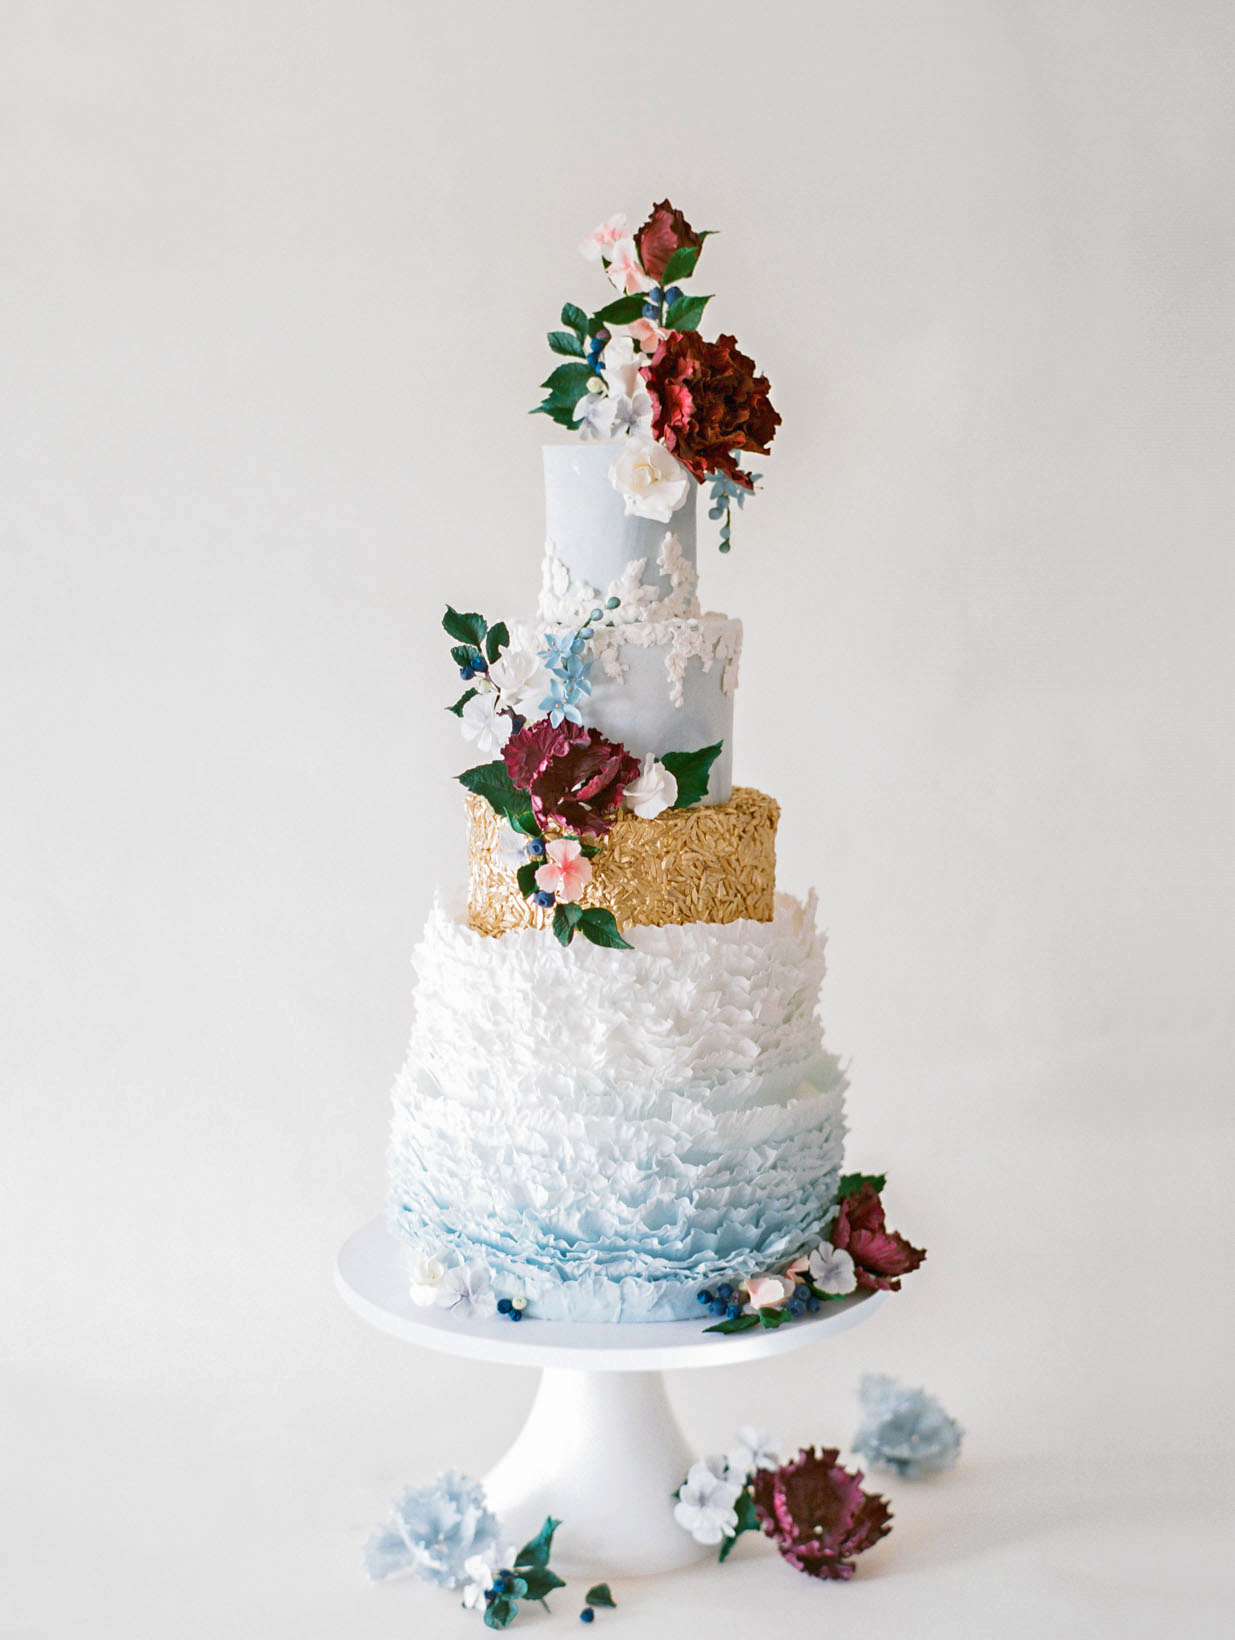 Metallic Wedding Cakes That Make a Shimmering Statement